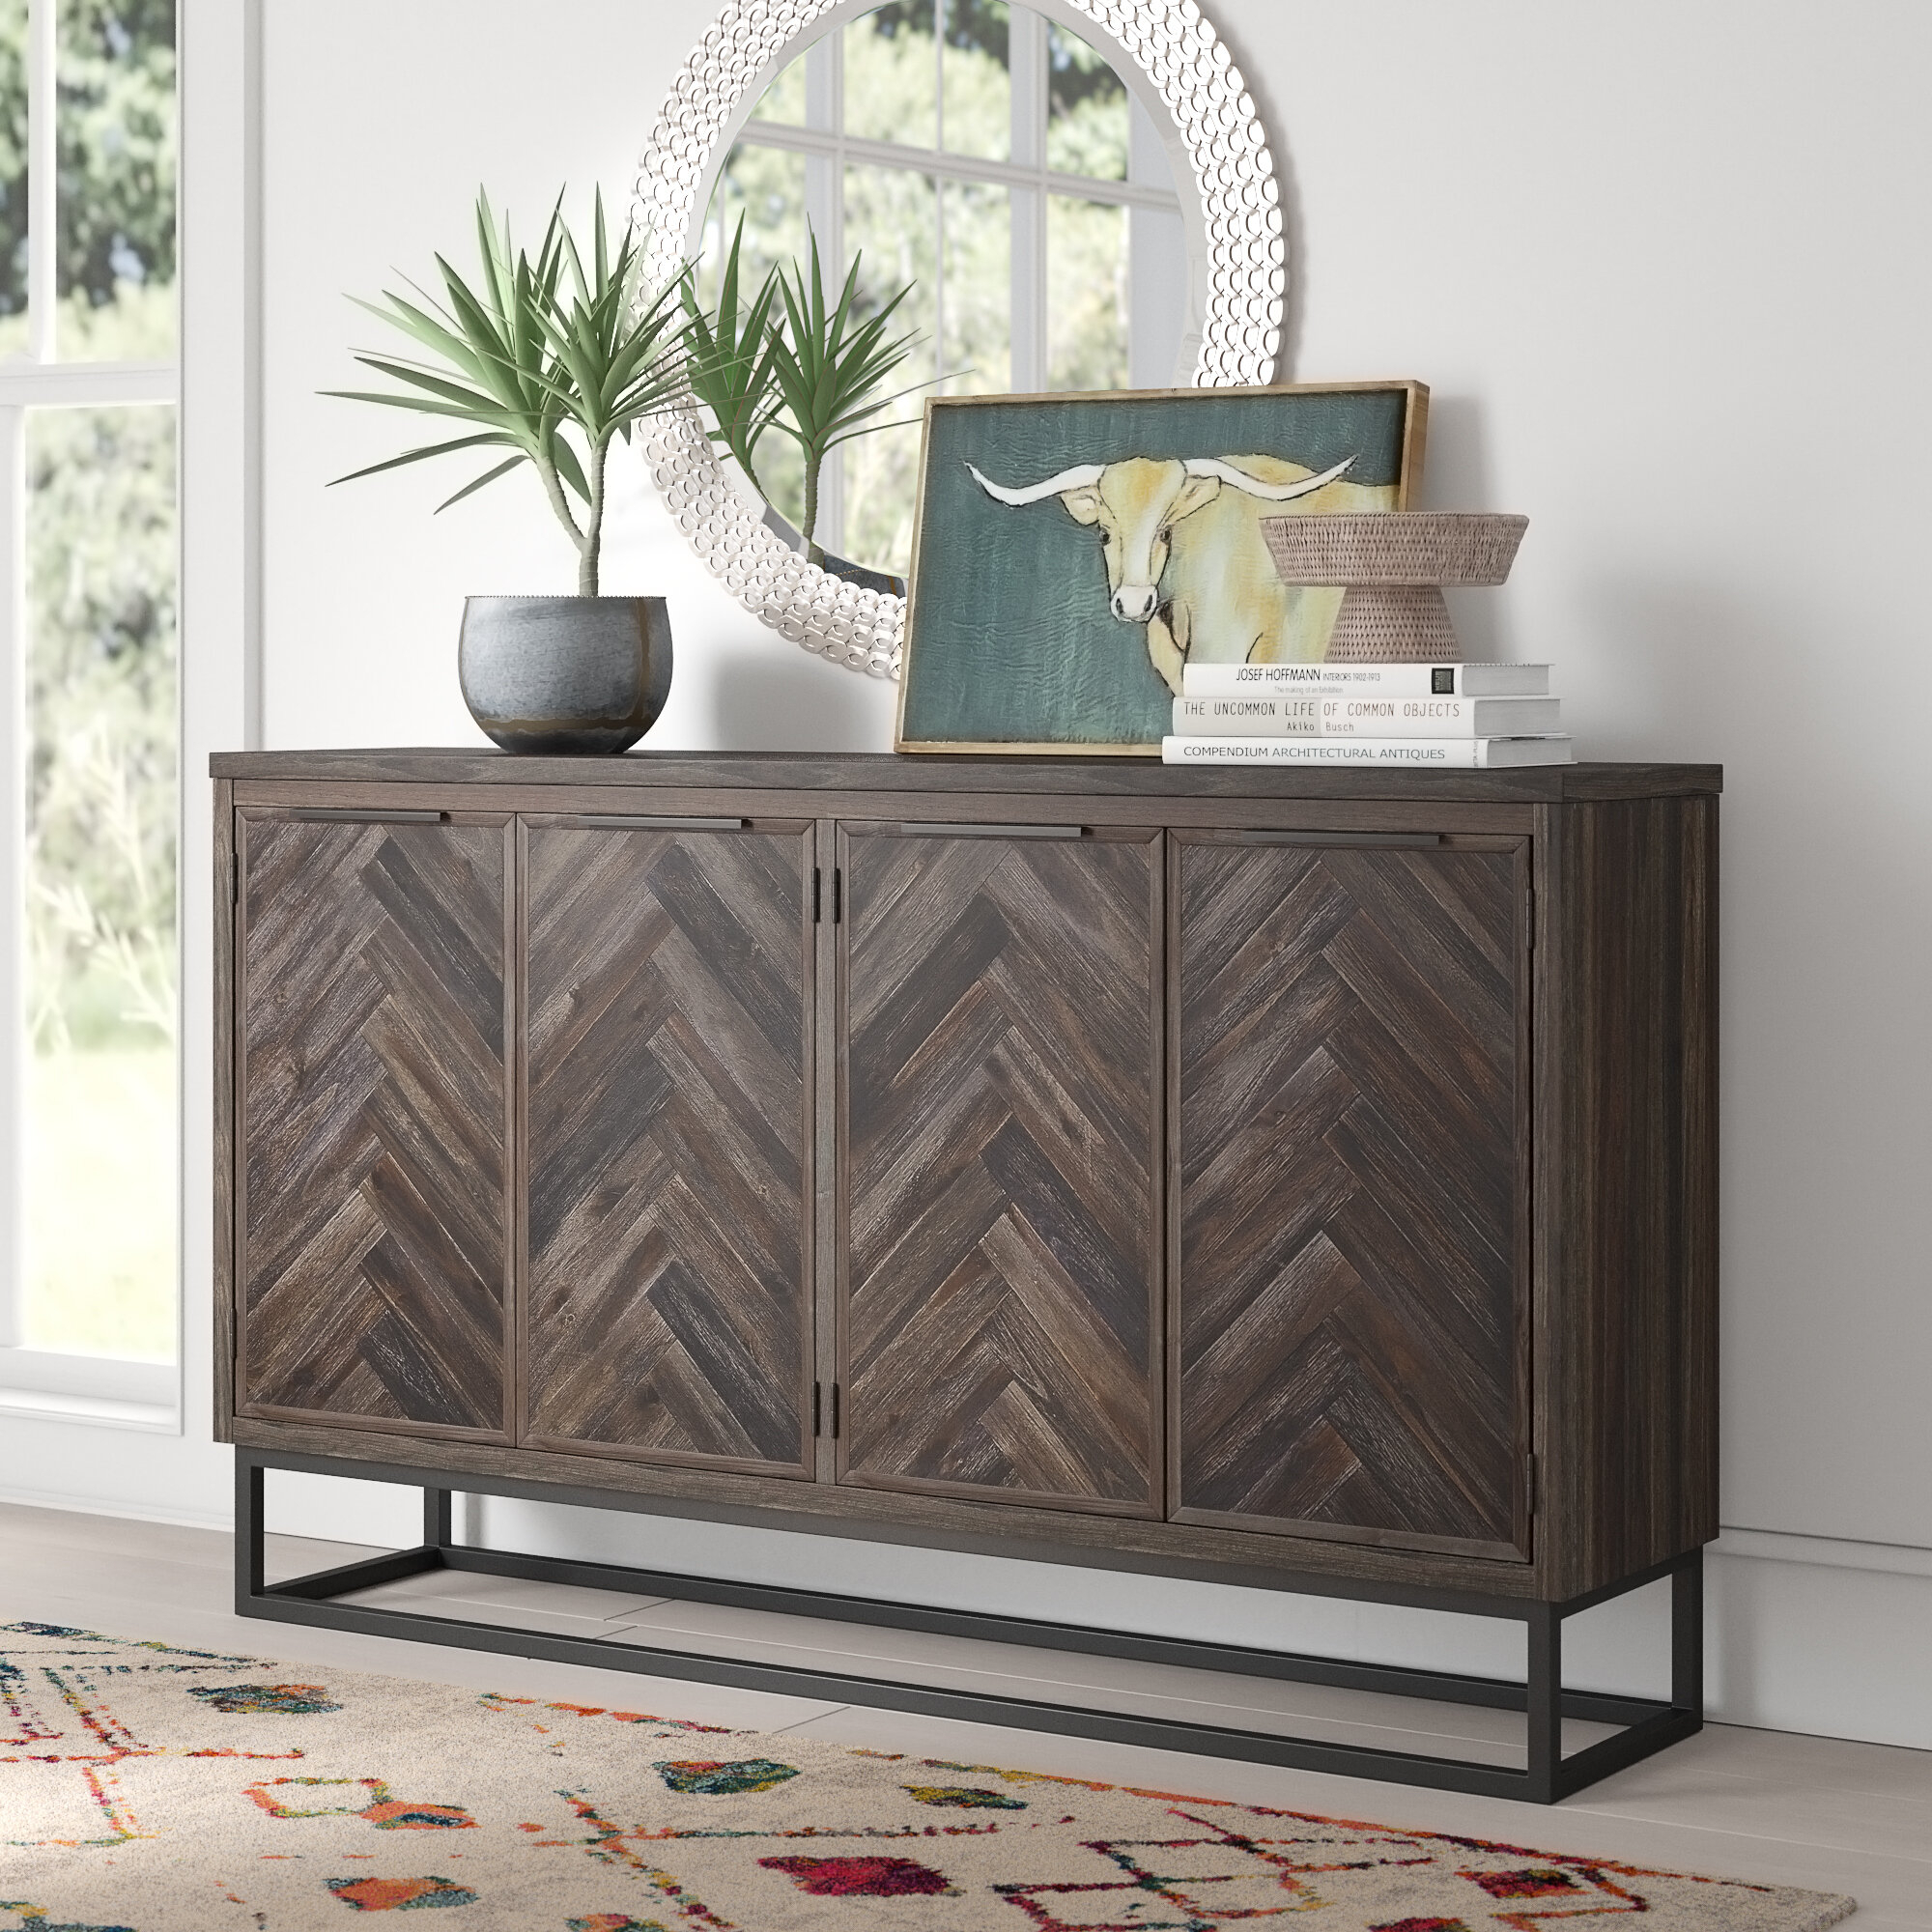 12 Inch Depth Sideboard | Wayfair With Most Current Barr Credenzas (#2 of 20)